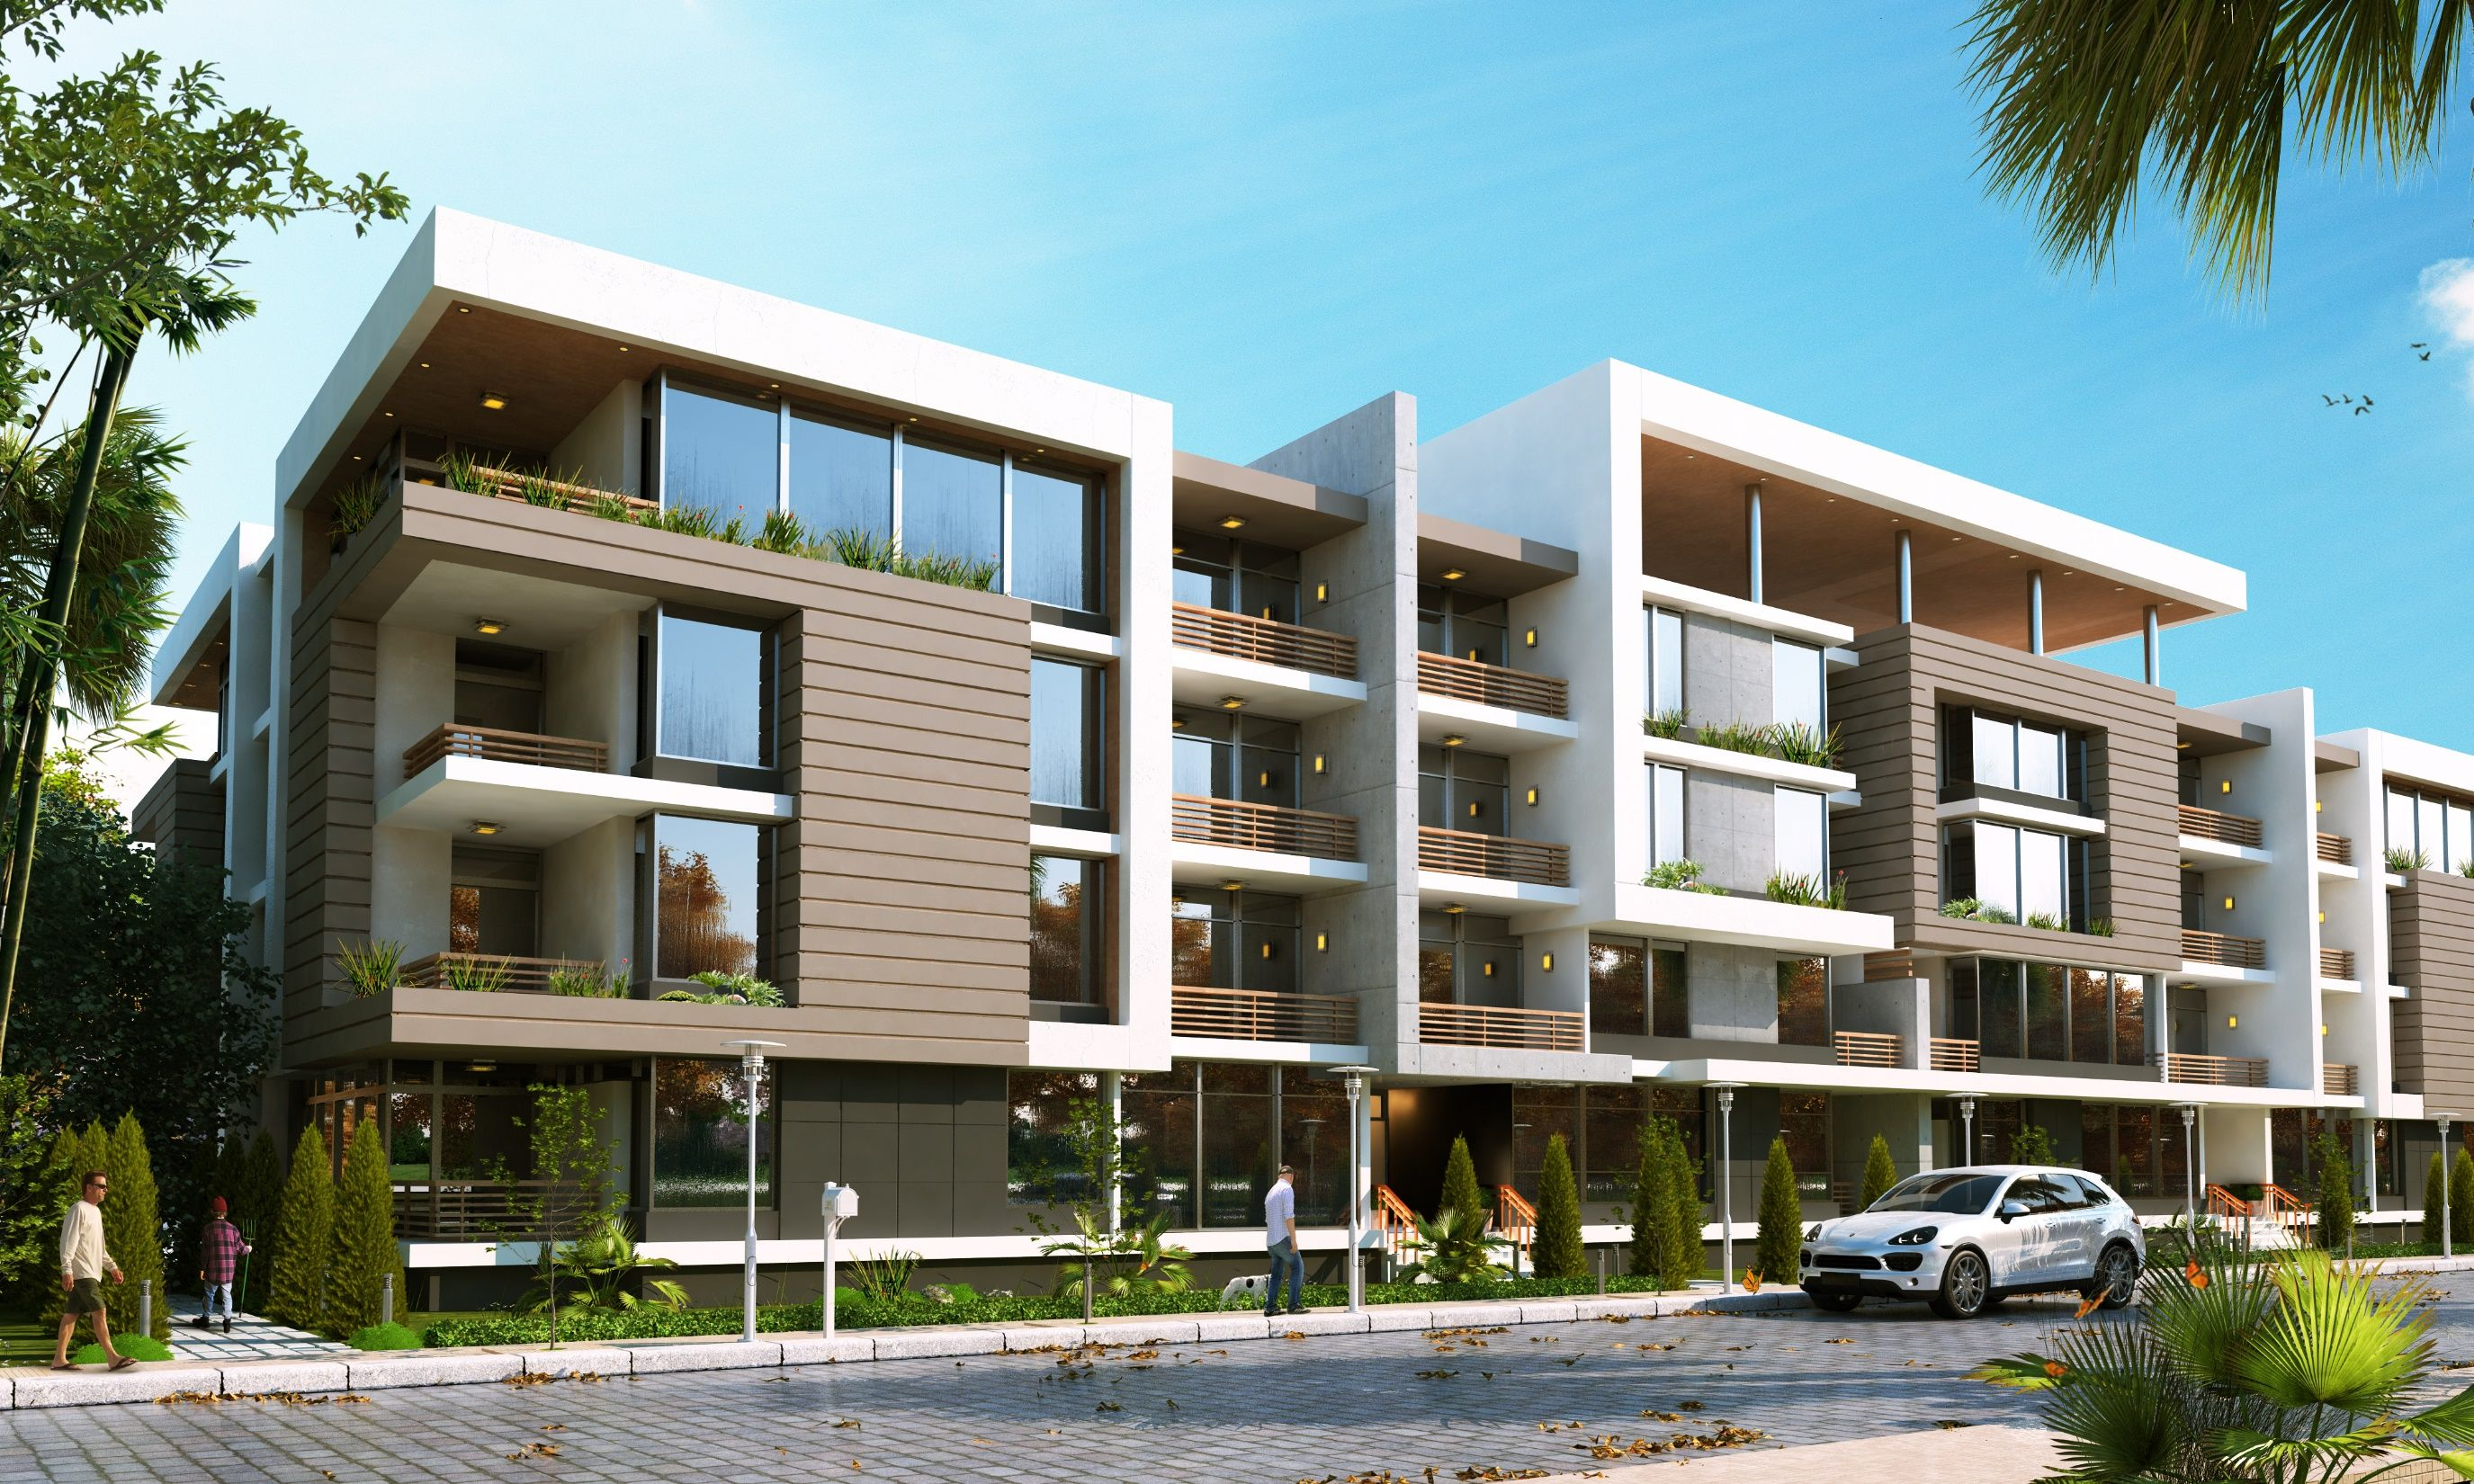 Simple 3 Stories Residential Building Apartment Buildings Building Building Facade